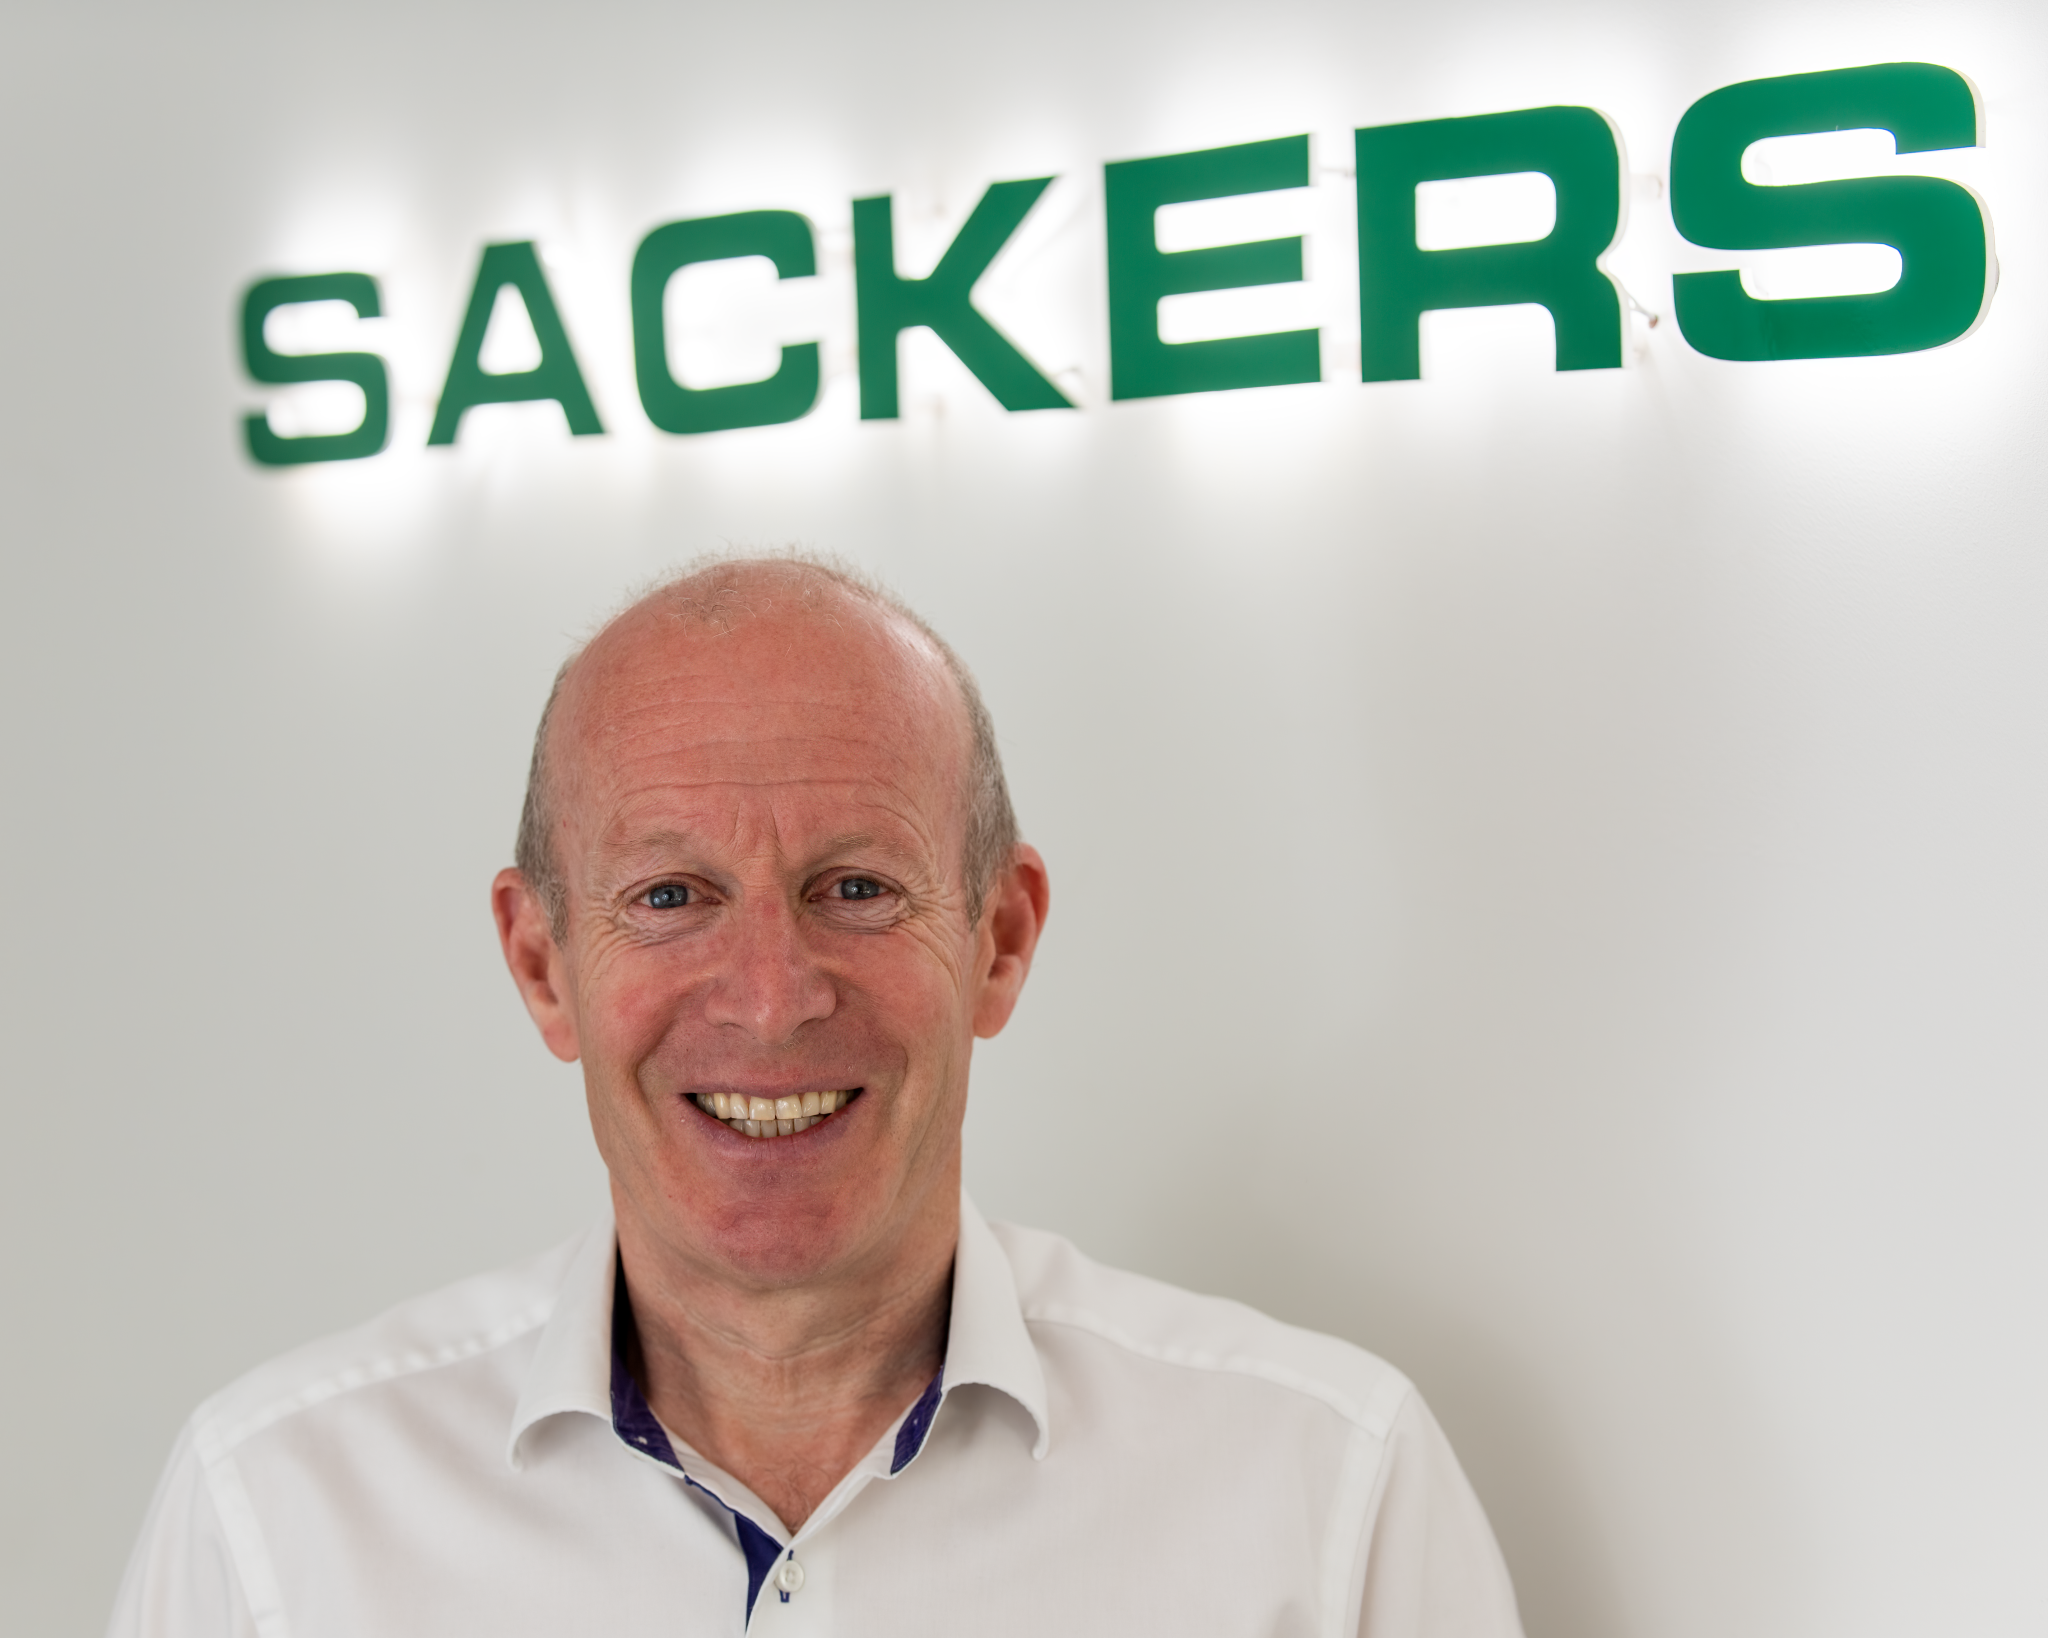 Sackers CEO makes 37 out 100 top global recycling stars